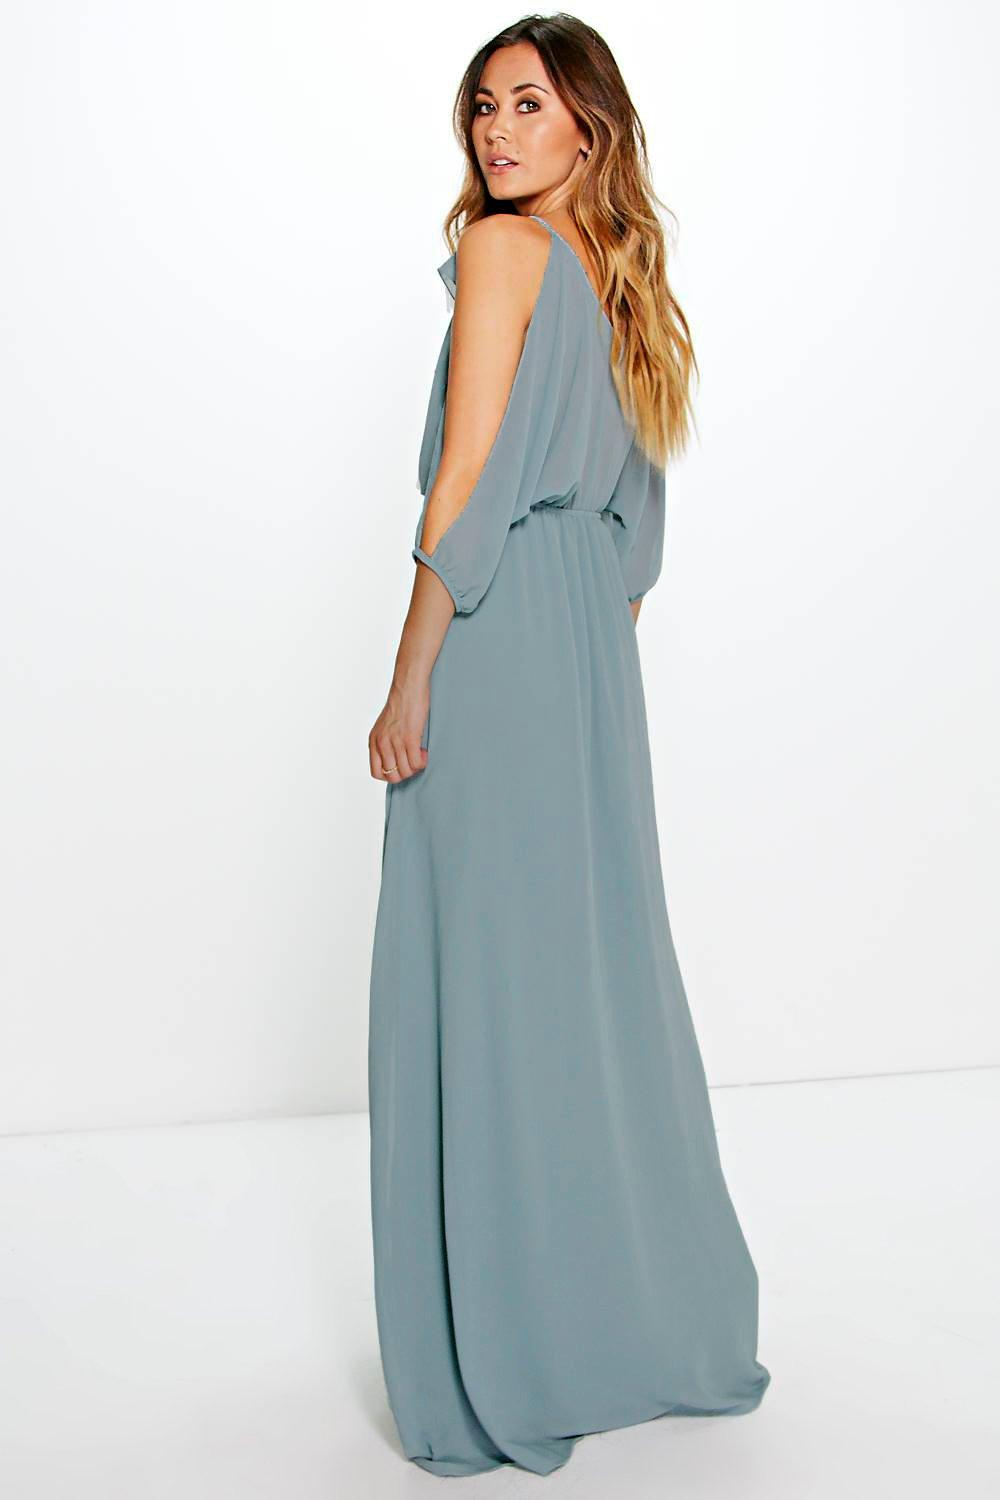 A maxi dress is also known as a floor-skimmer, because the hem falls just above the ground, while a midi dress falls between the ankle and knee. Maxis are perfect for taller women, but petite women .